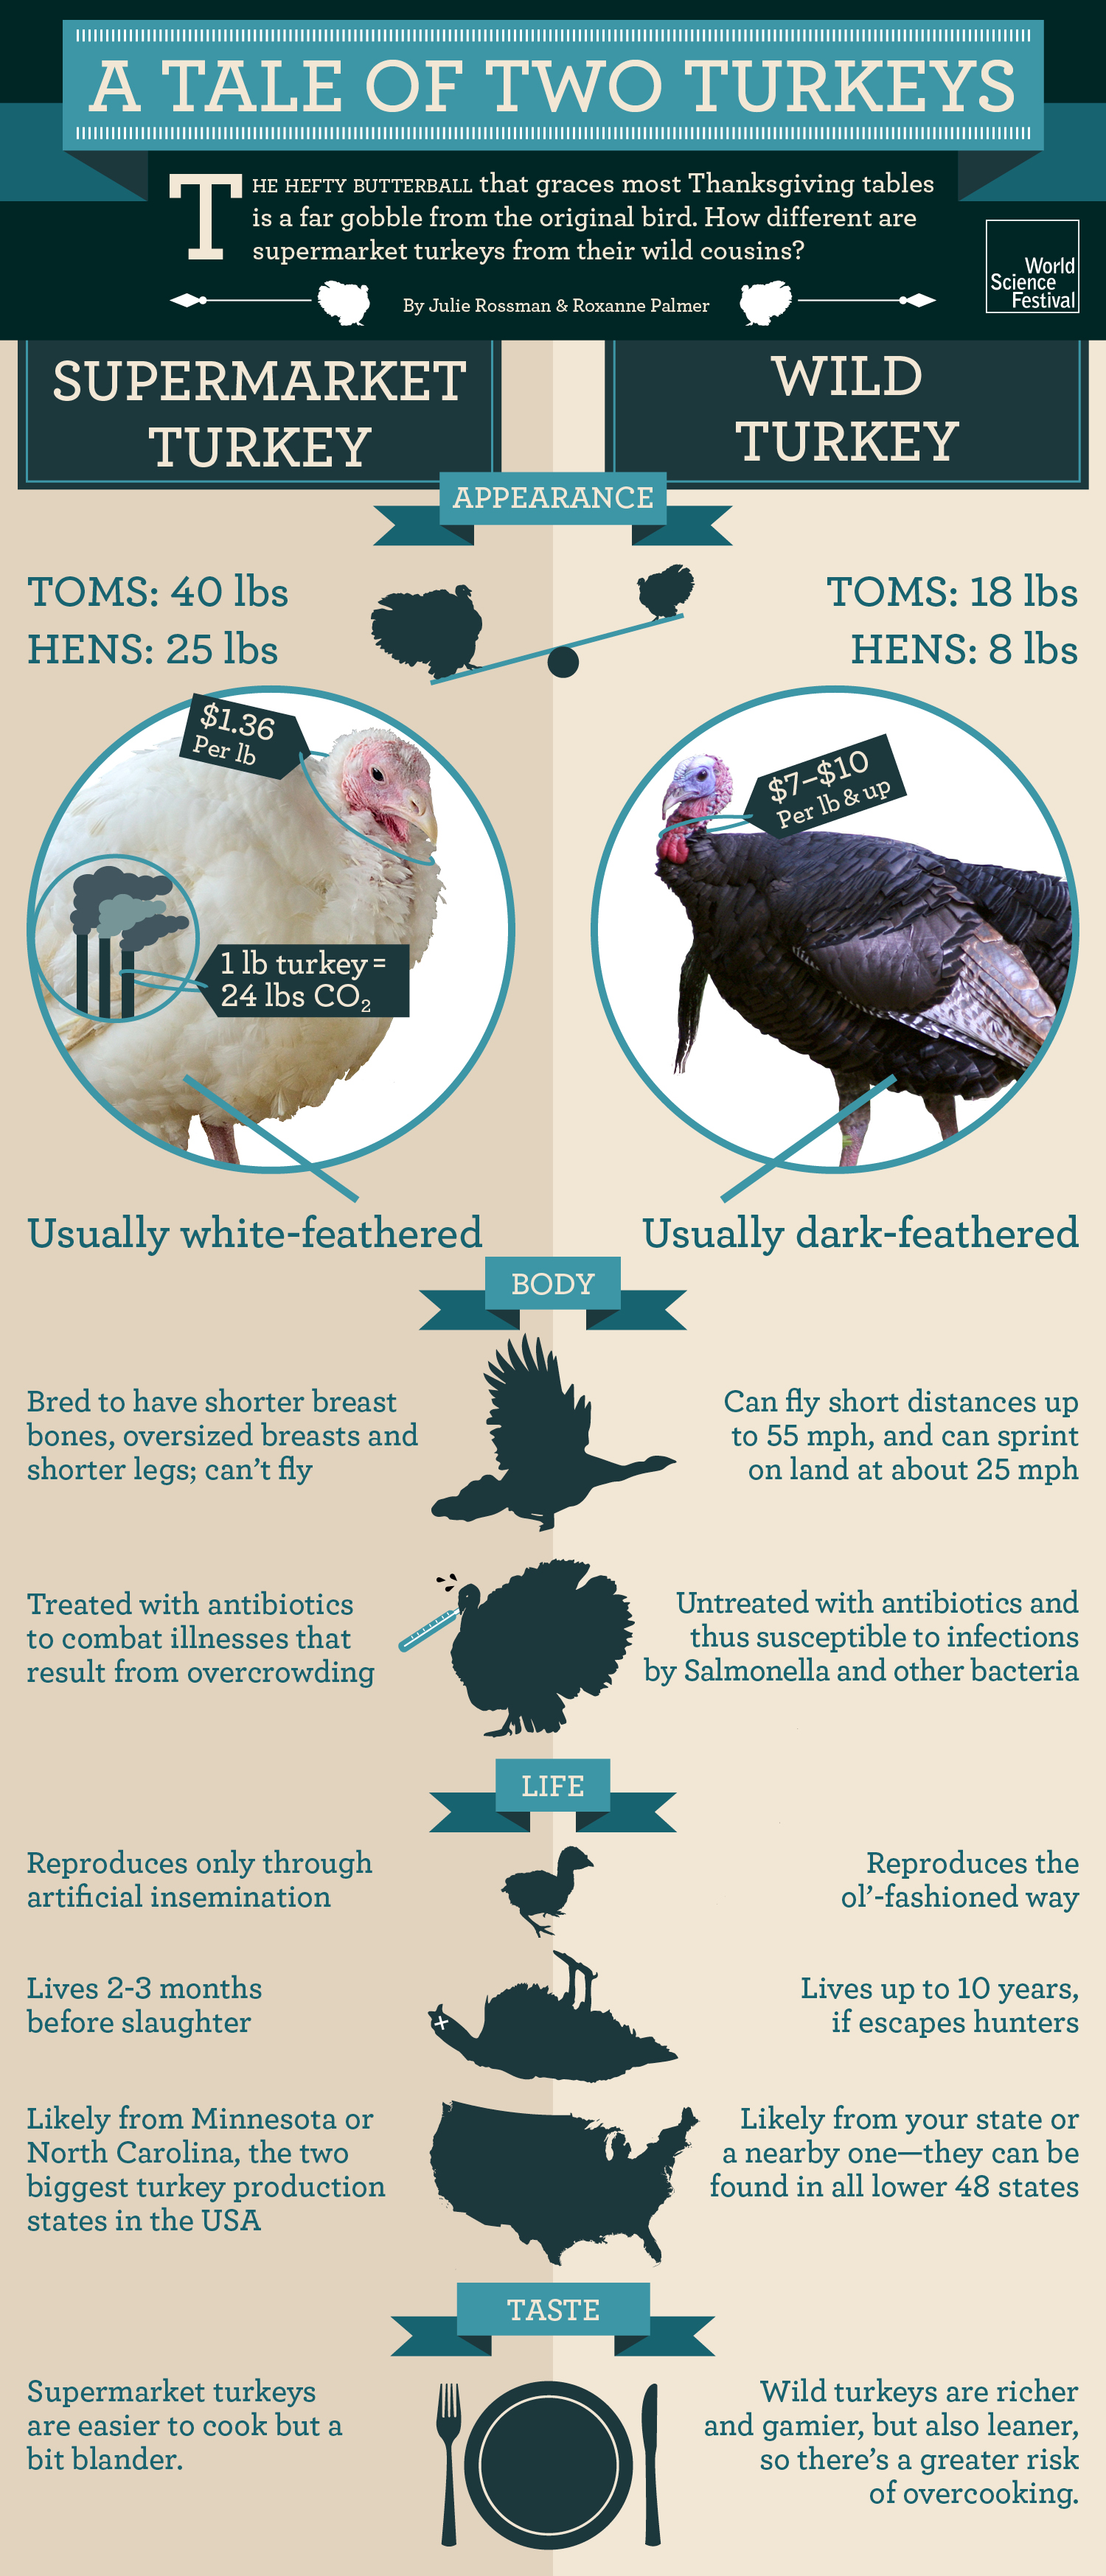 A Tale of Two Turkeys